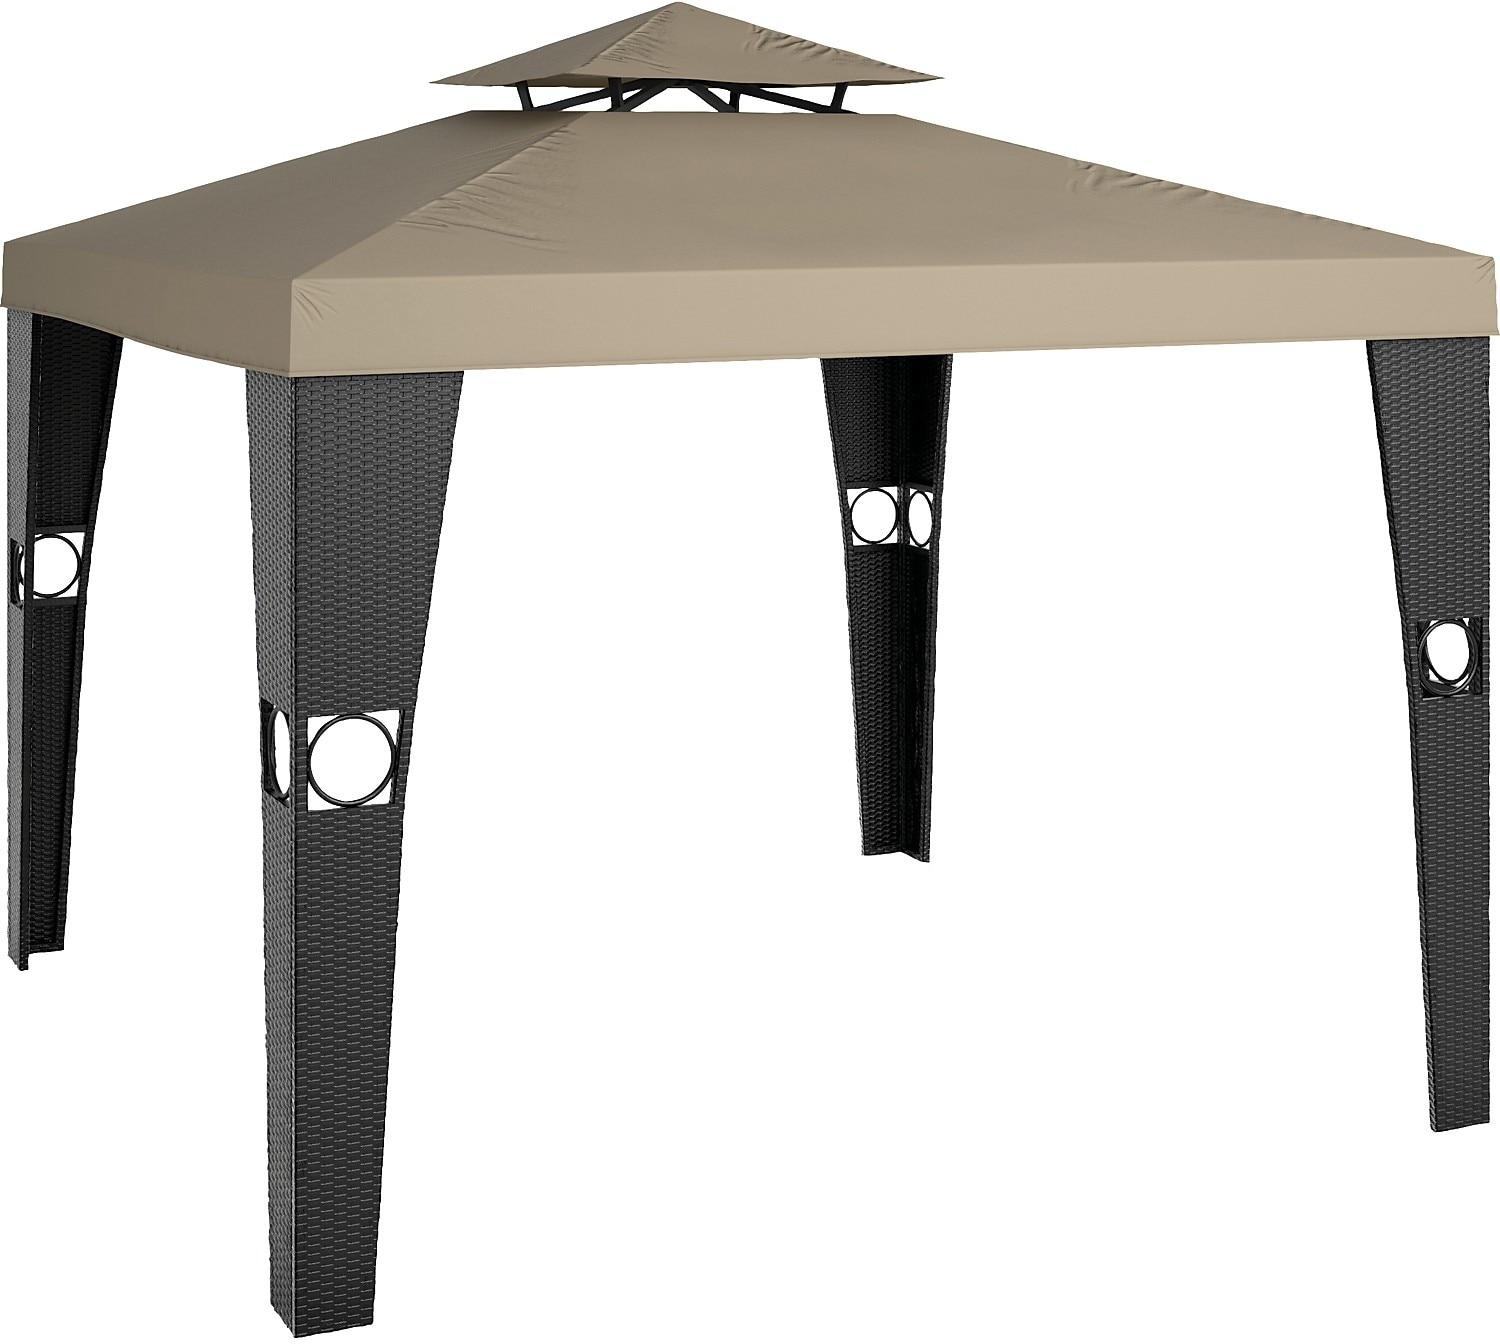 Outdoor Furniture - Riverside Patio Gazebo